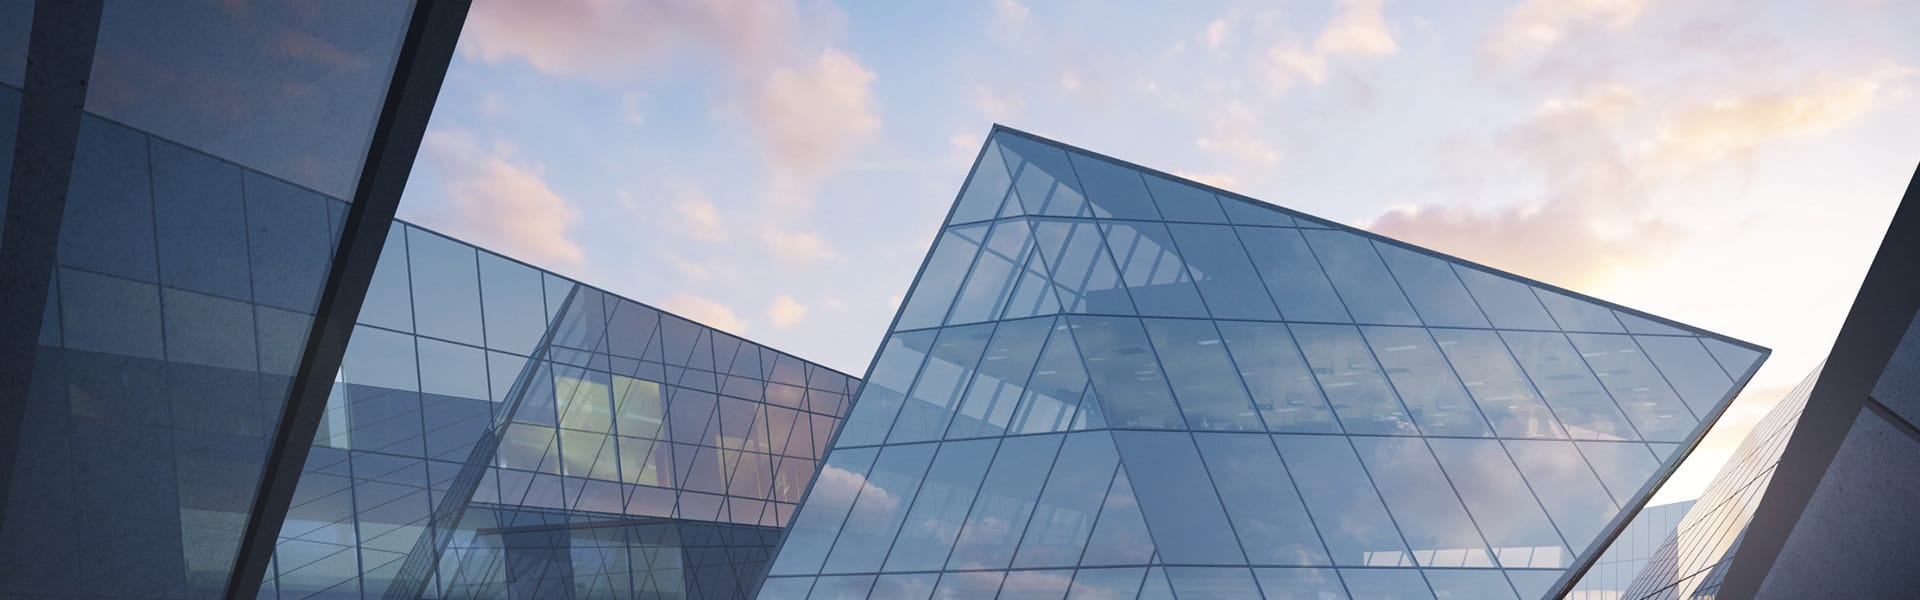 Thomas hauchecorne glass pyramid architecture vray sketchup